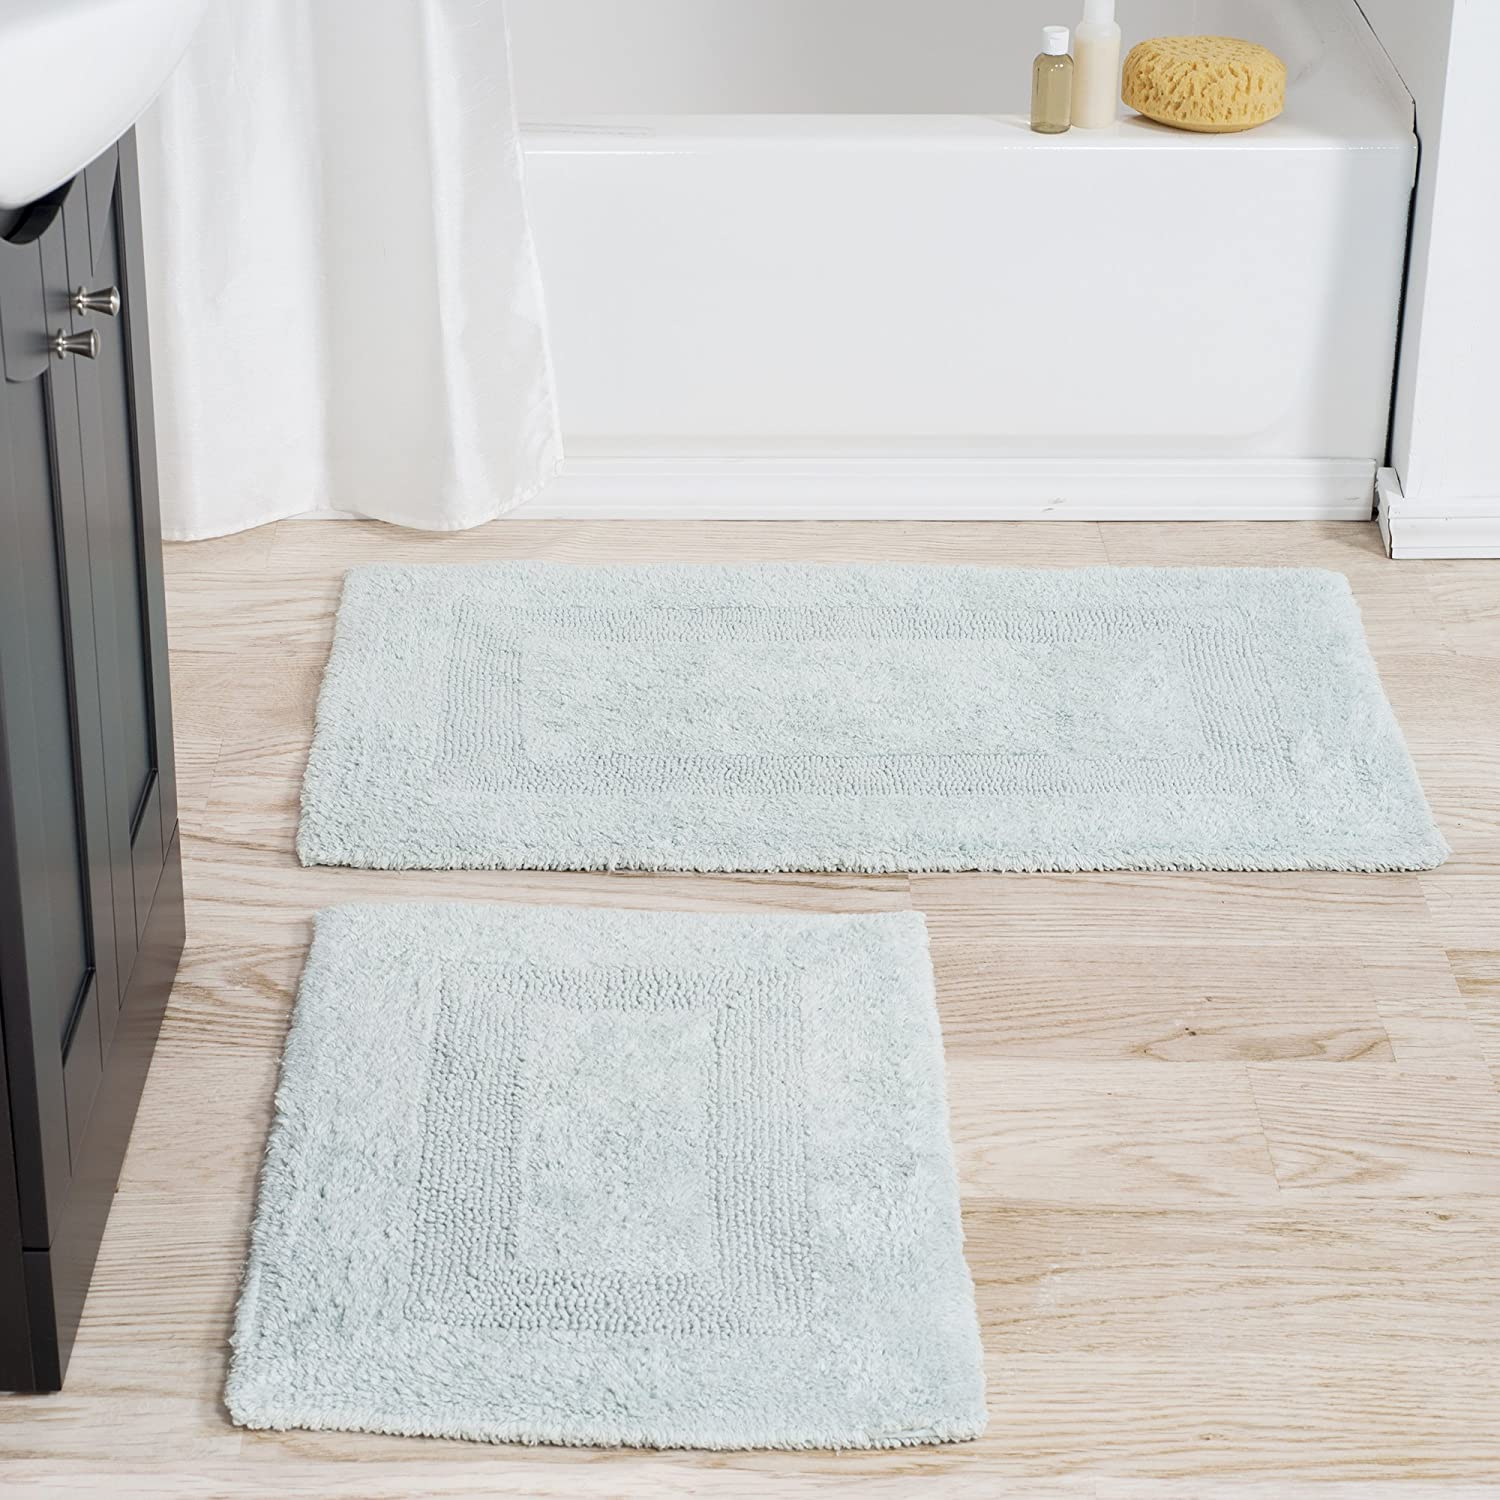 Cotton Bath Mat Set- 2 Piece 100 Percent Cotton Mats- Reversible, Soft, Absorbent and Machine Washable Bathroom Rugs By Lavish Home (Seafoam)